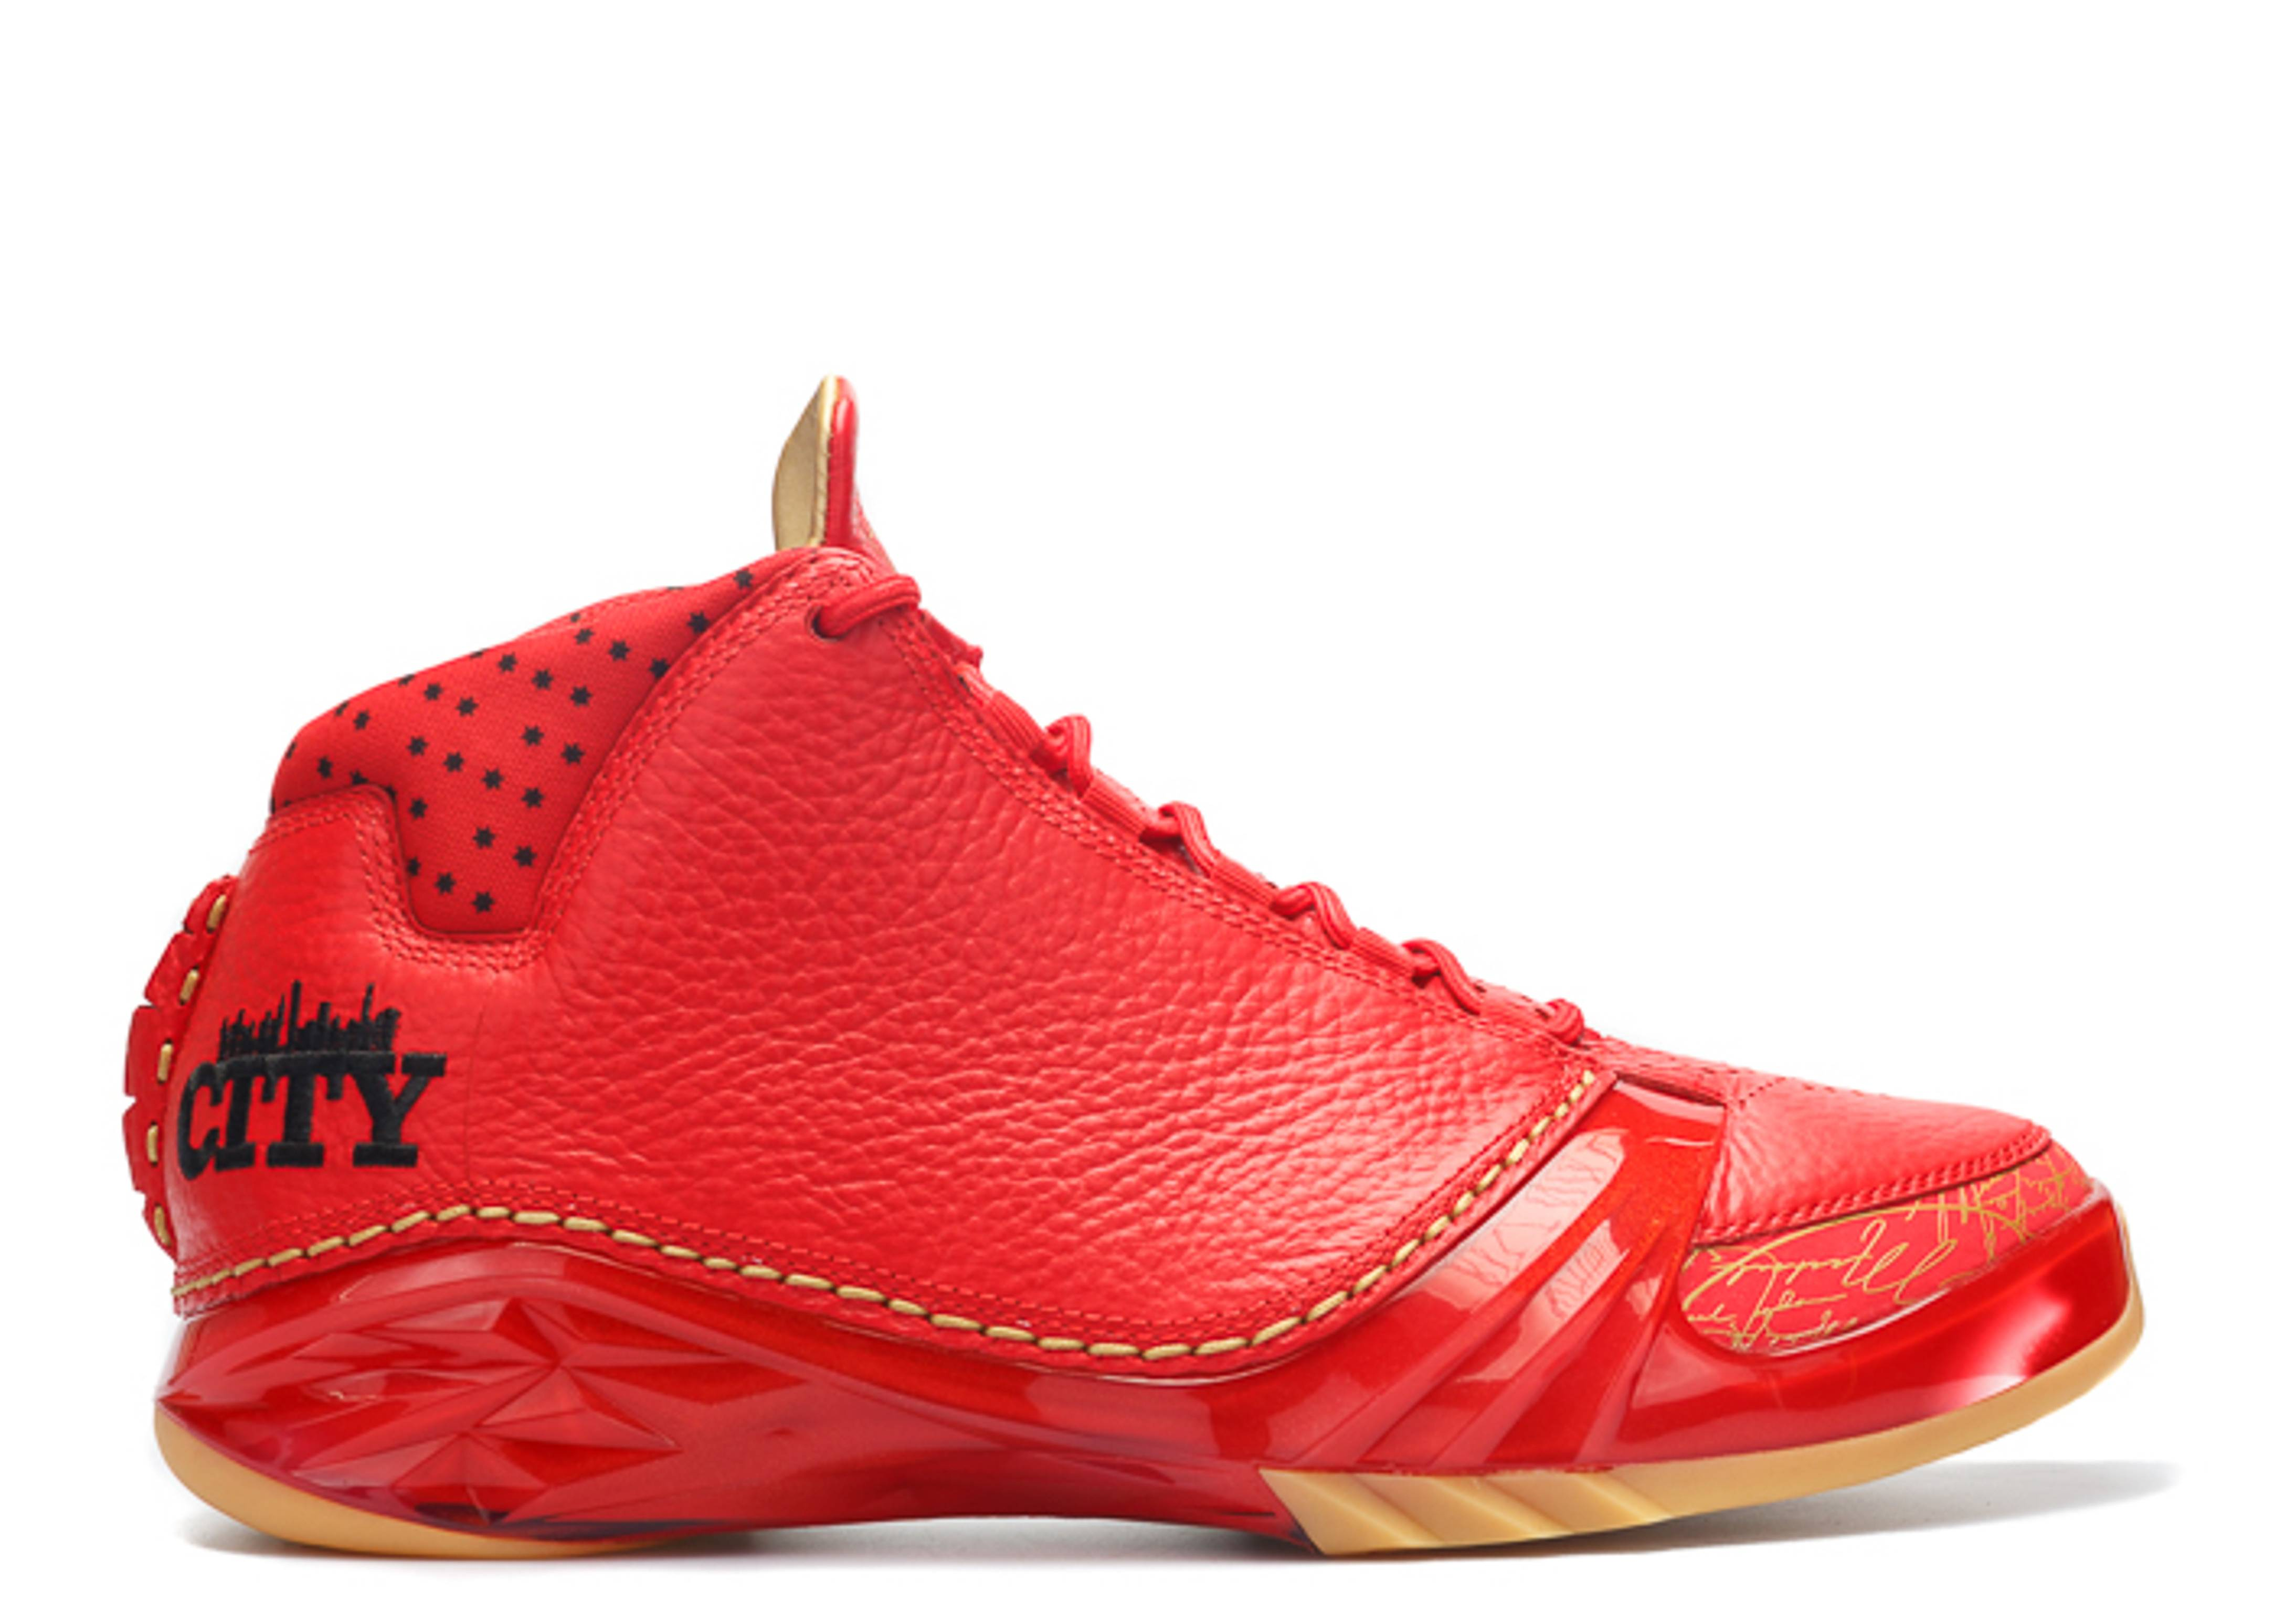 competitive price 42d7a 9185f ... nike chaussures pour hommes 2012 - air jordan 23 chicago